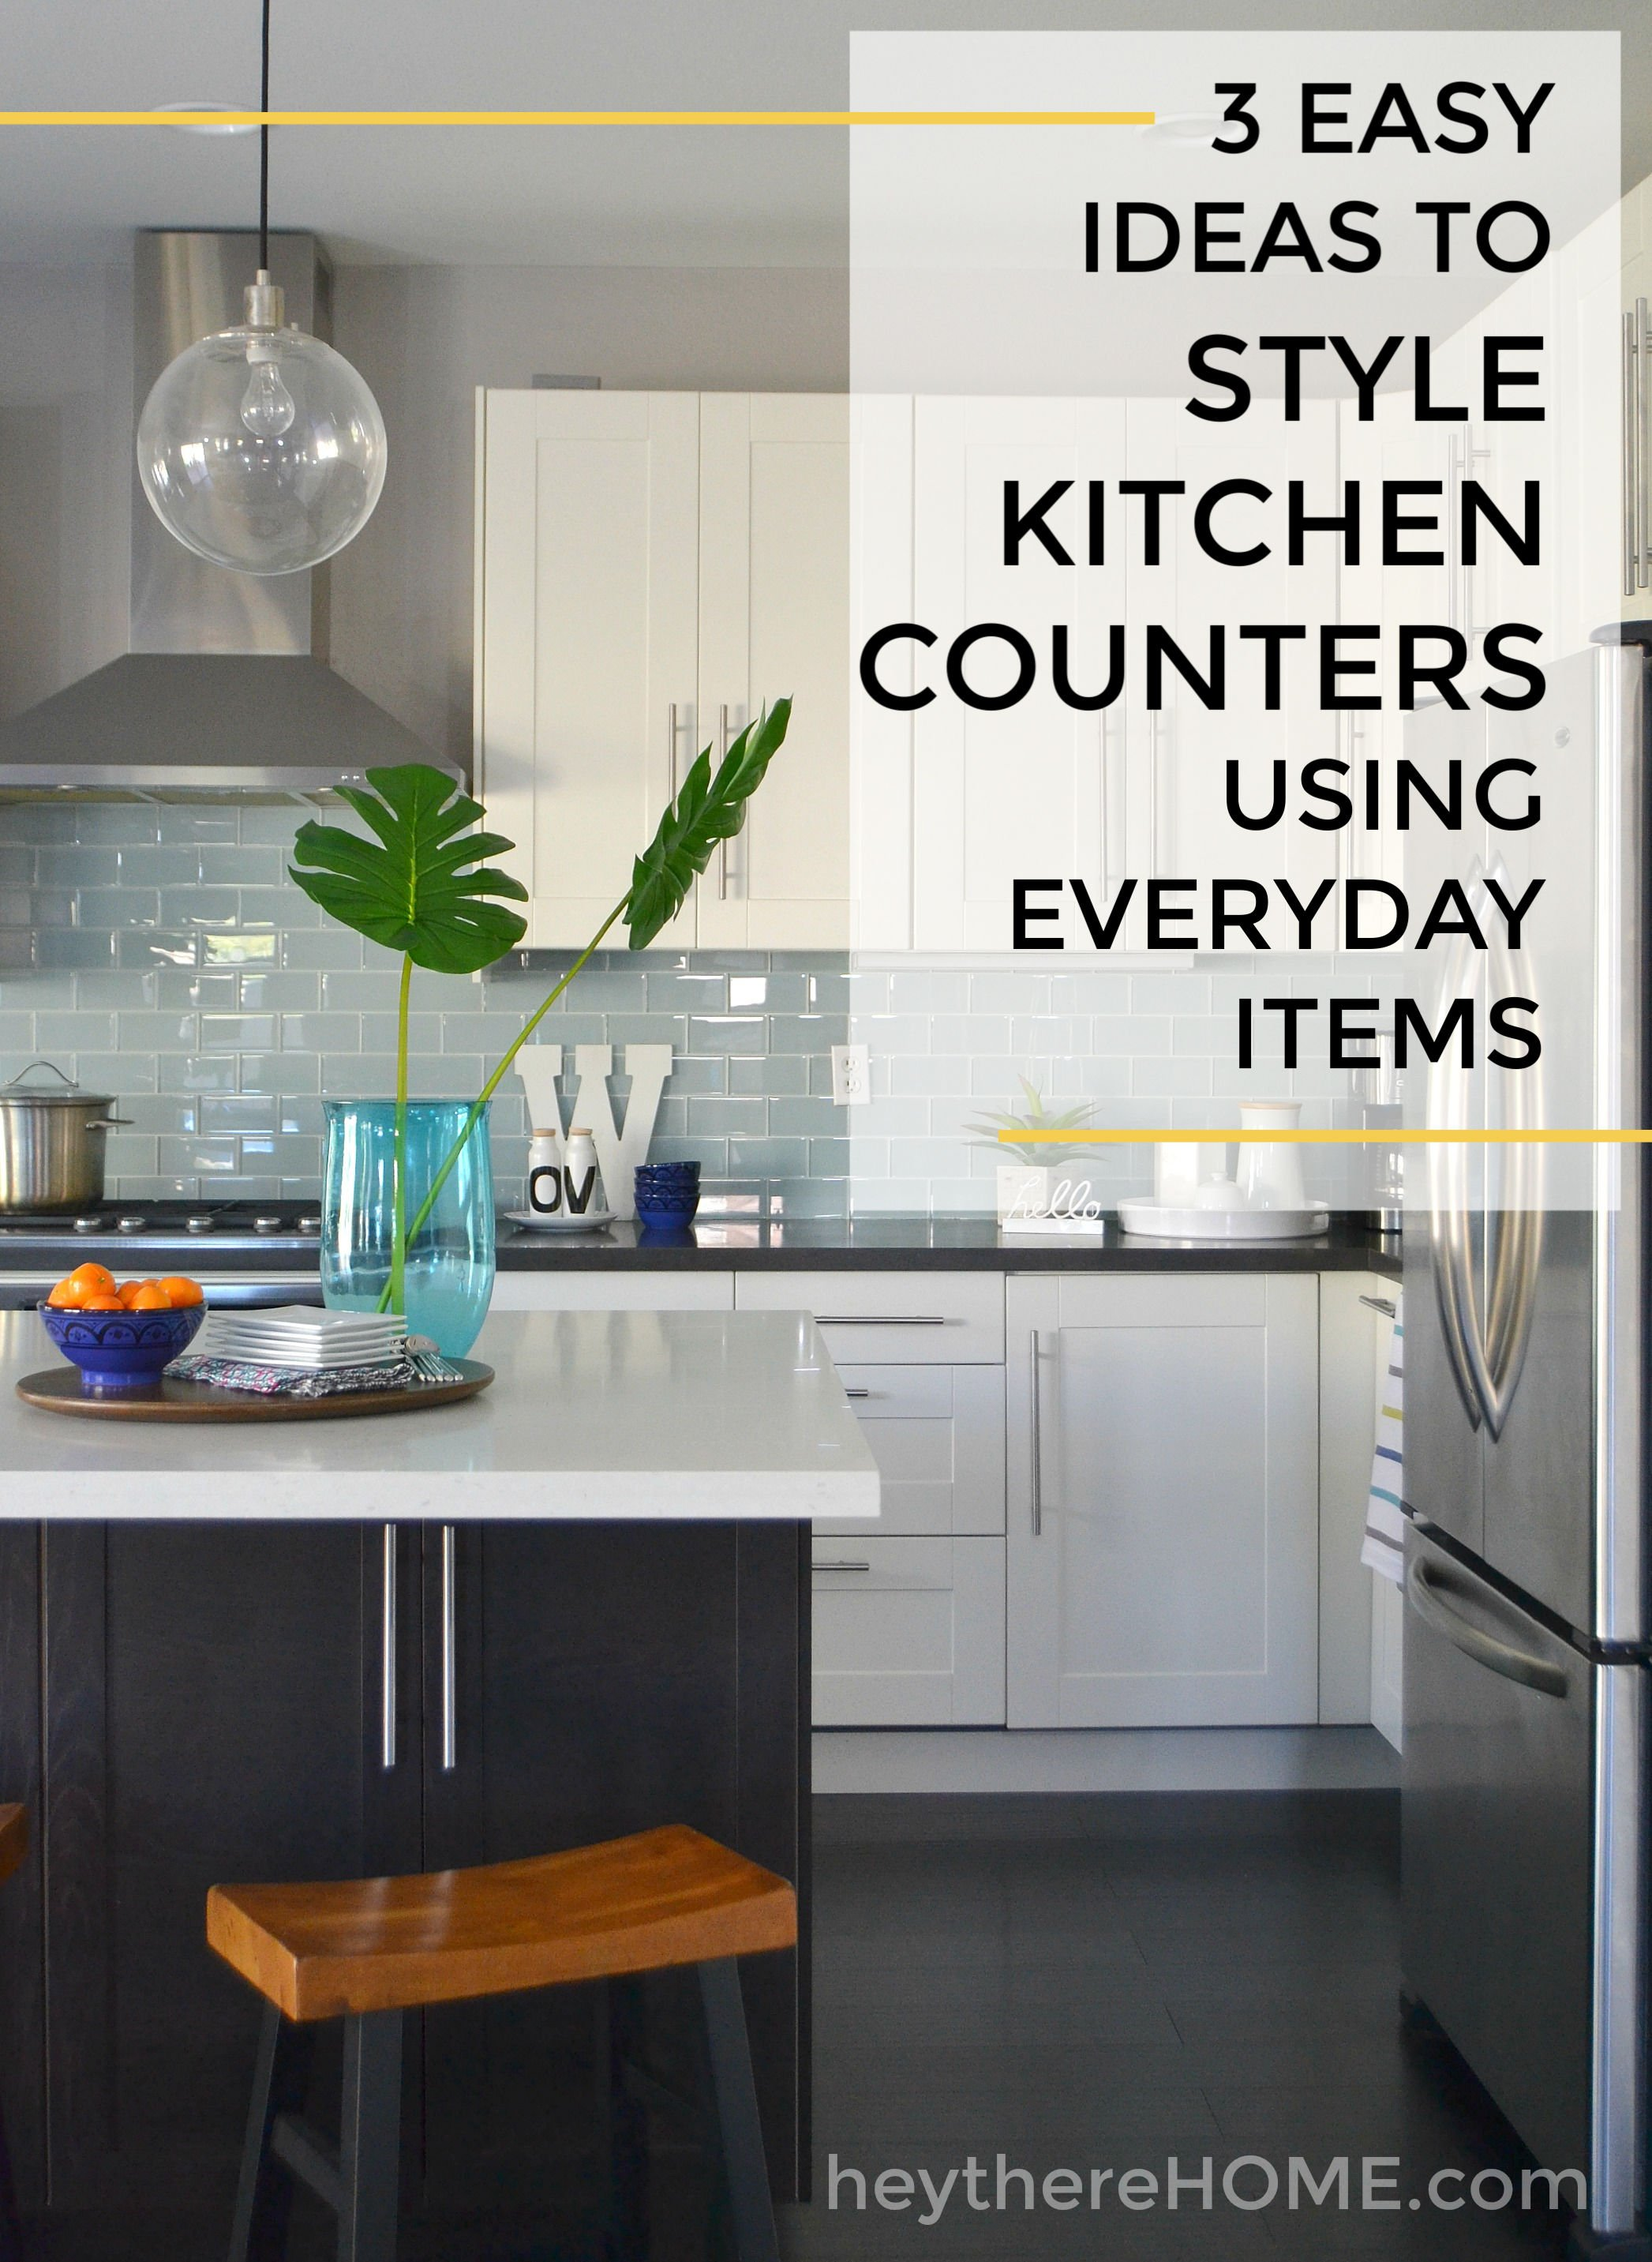 Easy Kitchen Counter Decor Ideas Without The Clutter